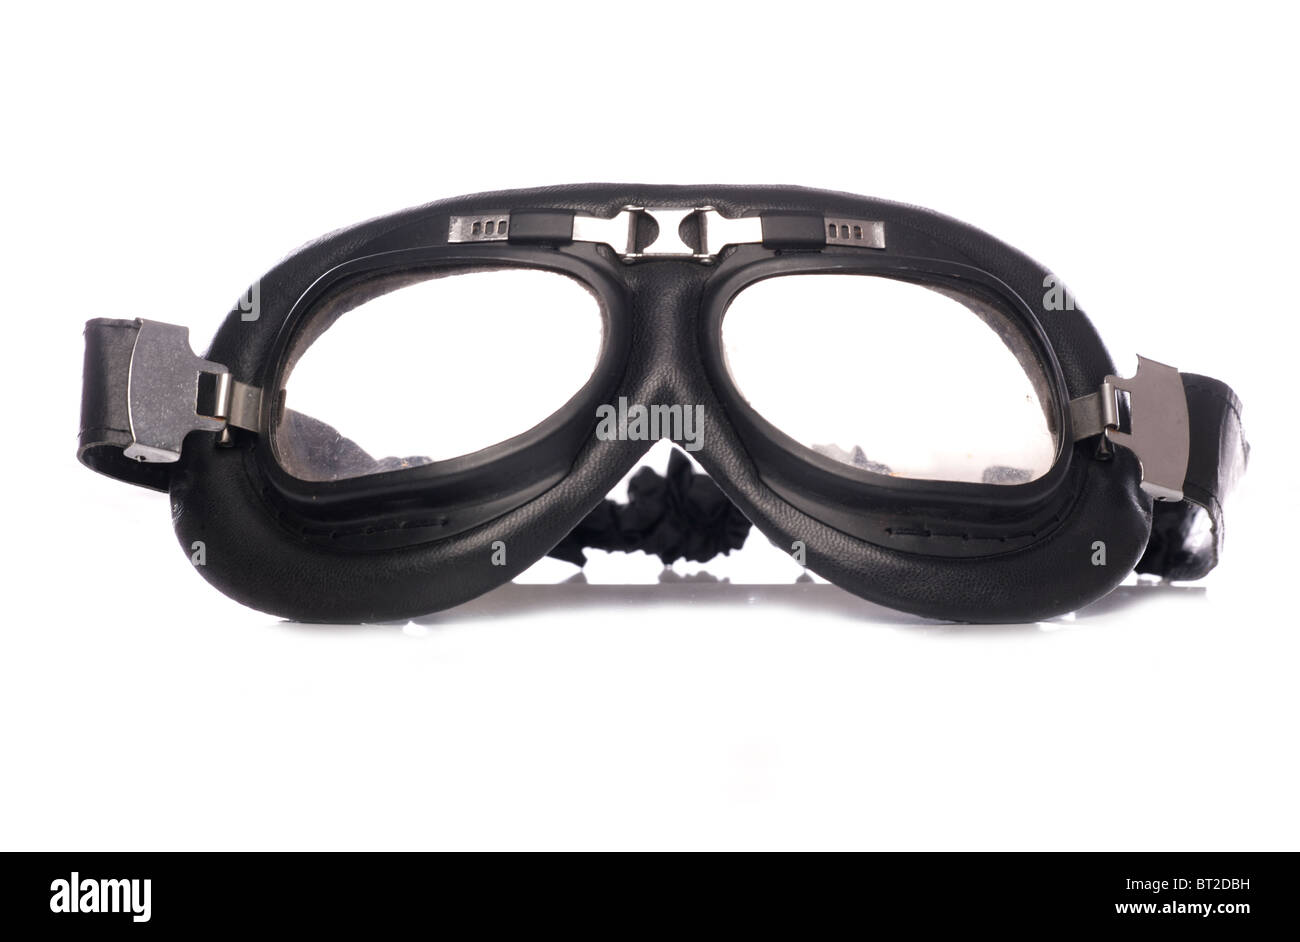 Retro motorcycle goggles studio cutout - Stock Image